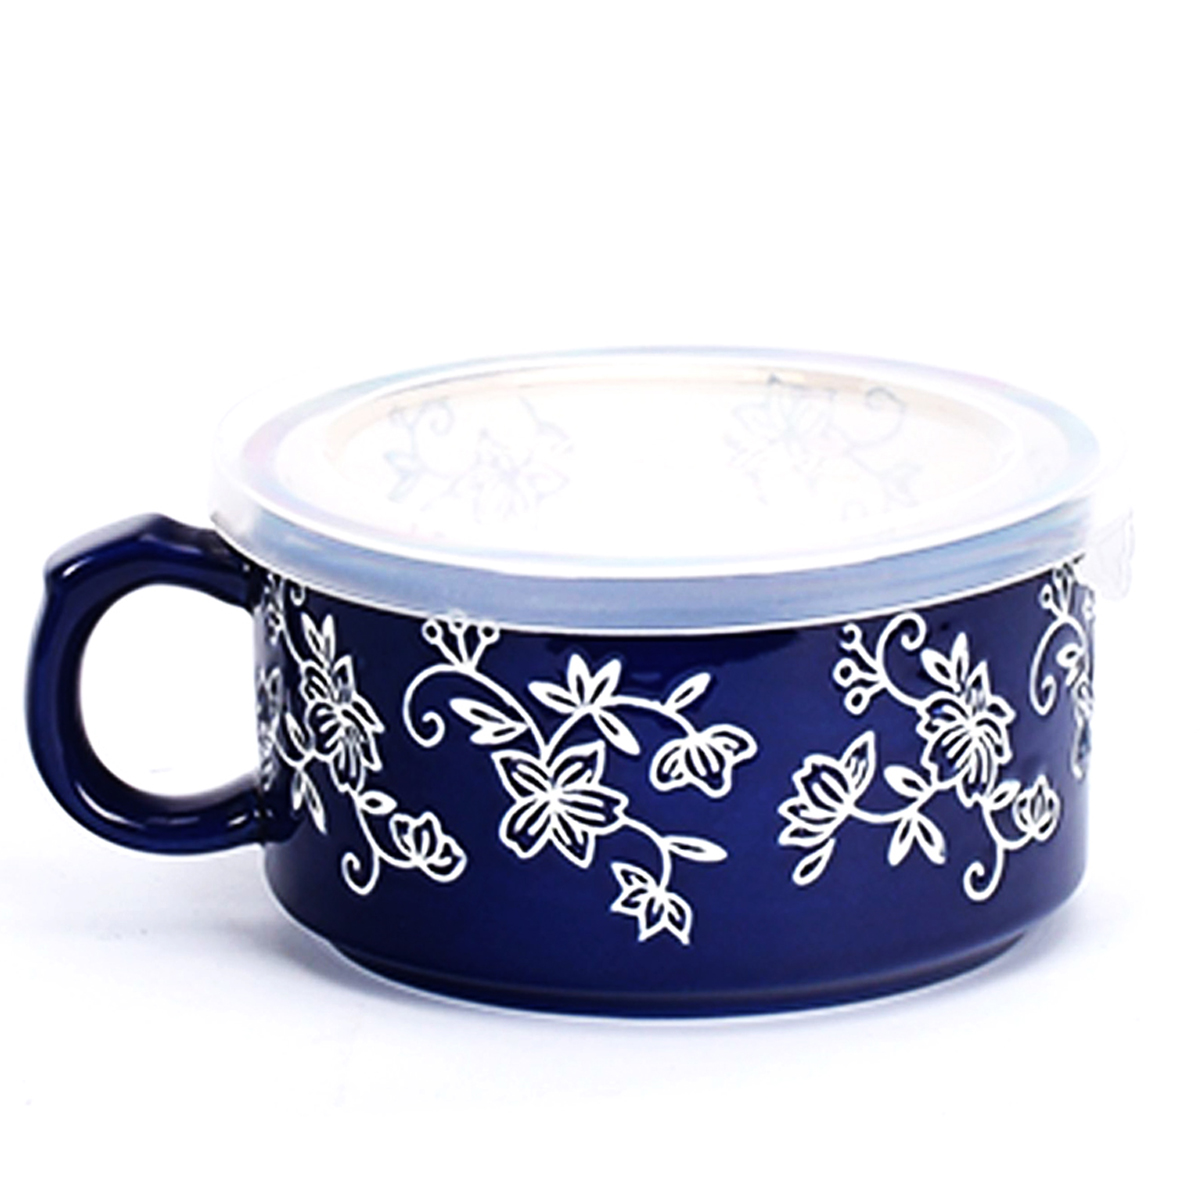 temp-tations® Floral Lace Meal Mug with Gift Box – Blue